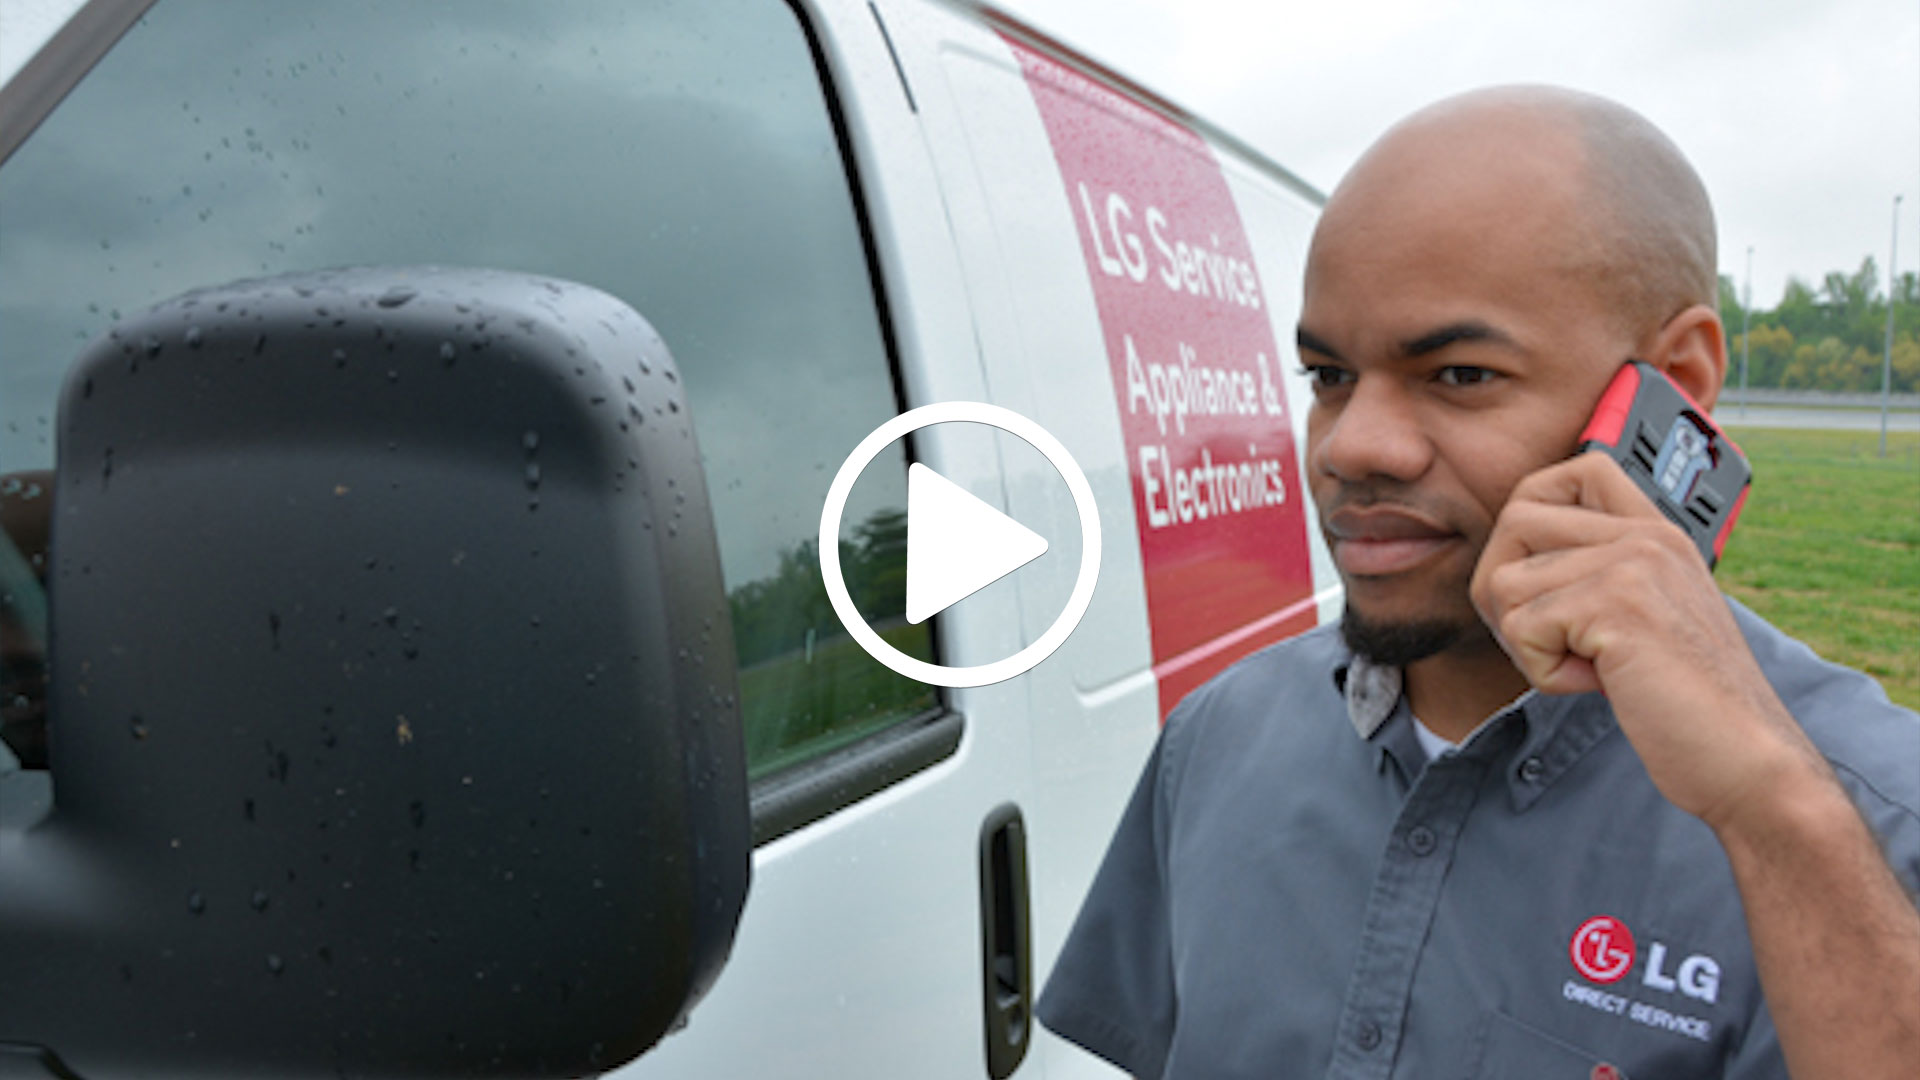 Watch our careers video for available job opening Field Service Technician in Deerfield Beach, FL